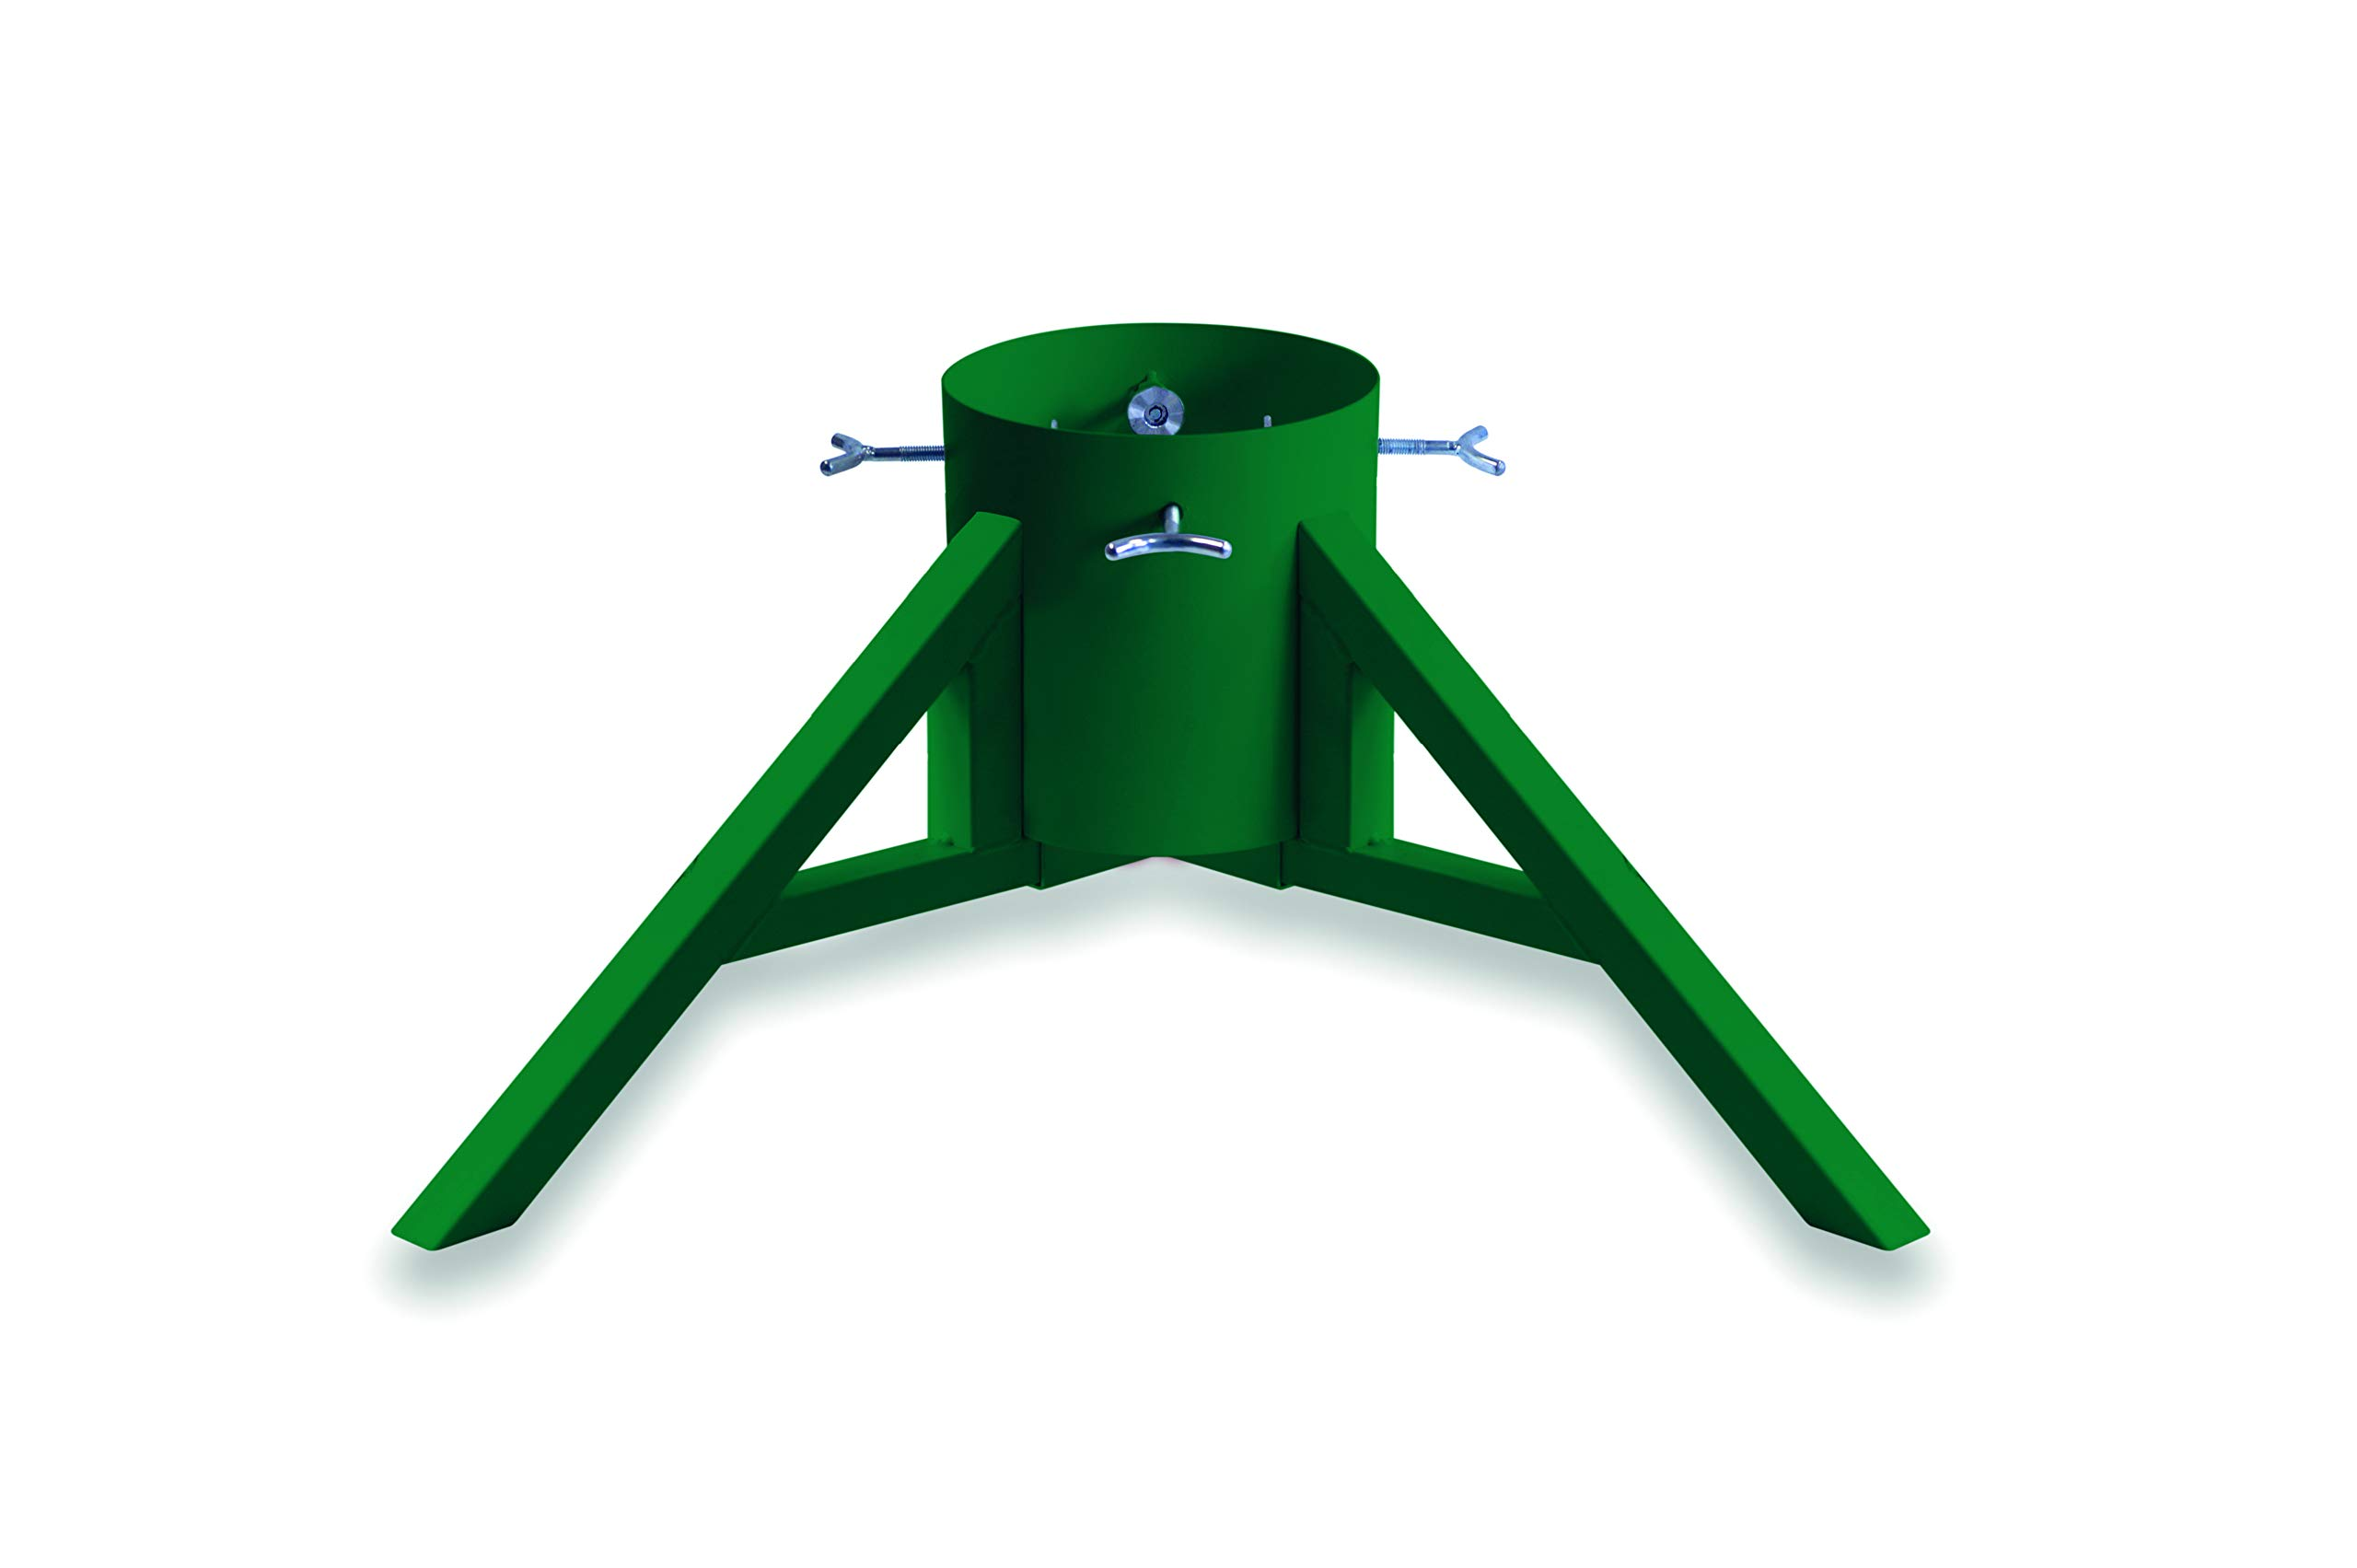 Tree Nest Modern & Sturdy Design Christmas Tree Stand for Real Trees Up to 8.3' Trees Water Reservoir Holds Up to 0.95 Gal (Green)